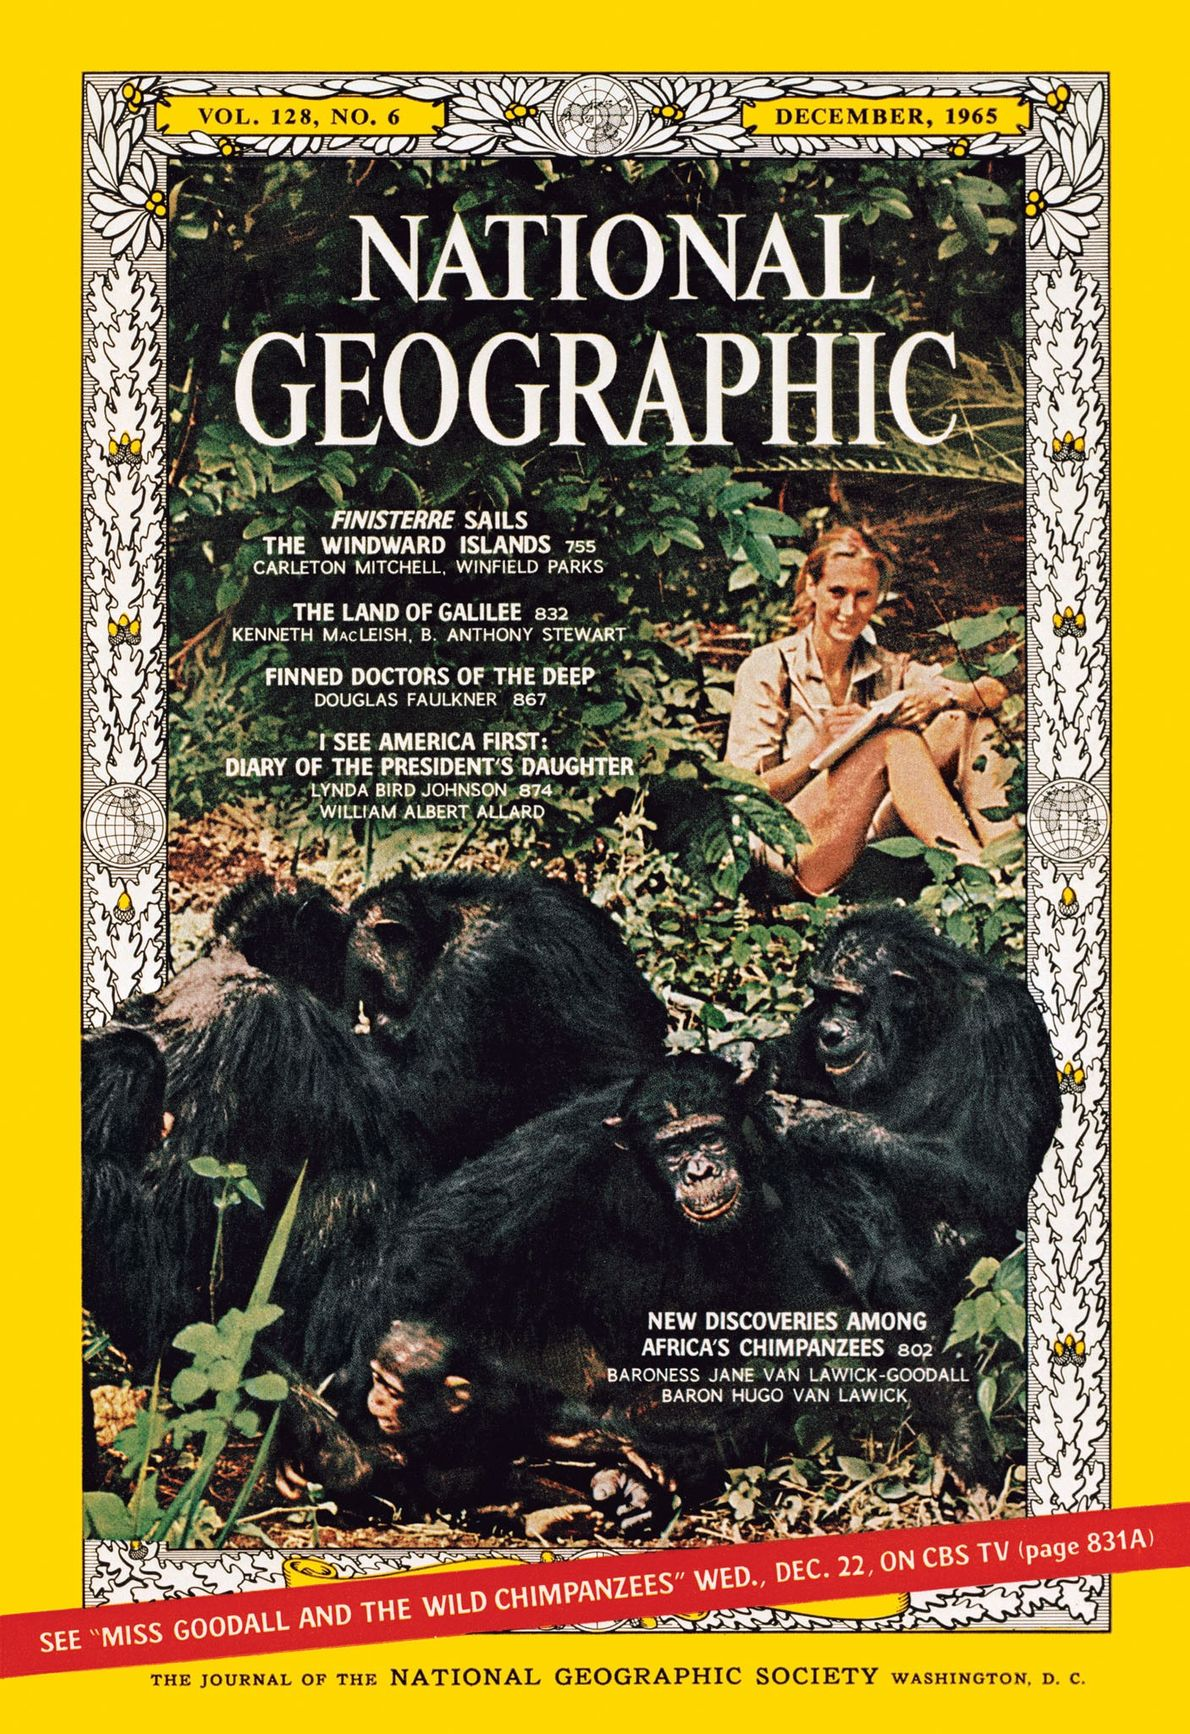 Pioneering primatologist Jane Goodall and her chimps were on the December 1965 cover.